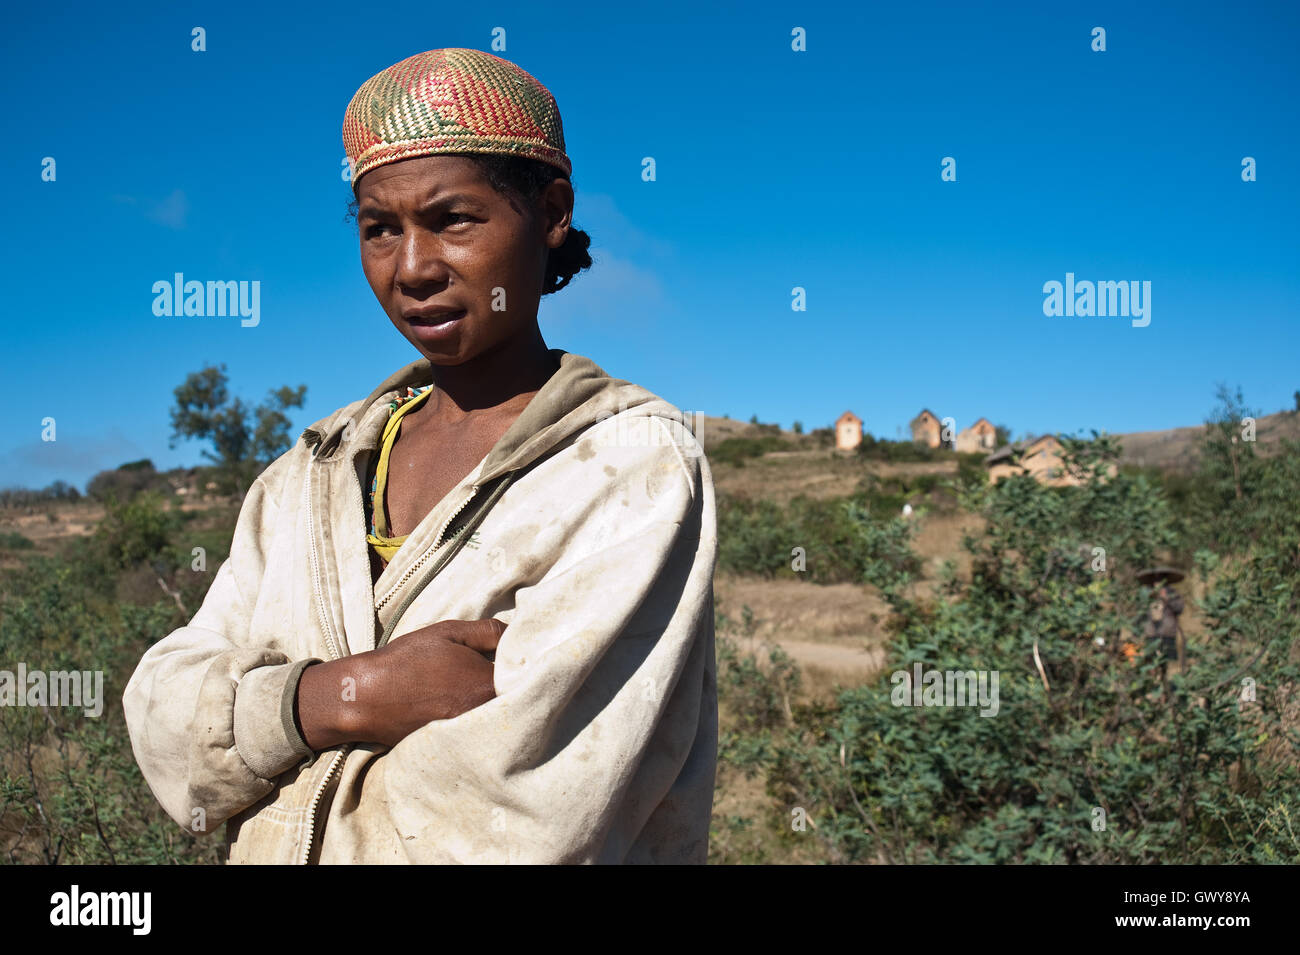 Portrait of a woman who is a ( part time) gold digger ( Madagascar). She belongs to the Betsileo ethnic group. - Stock Image